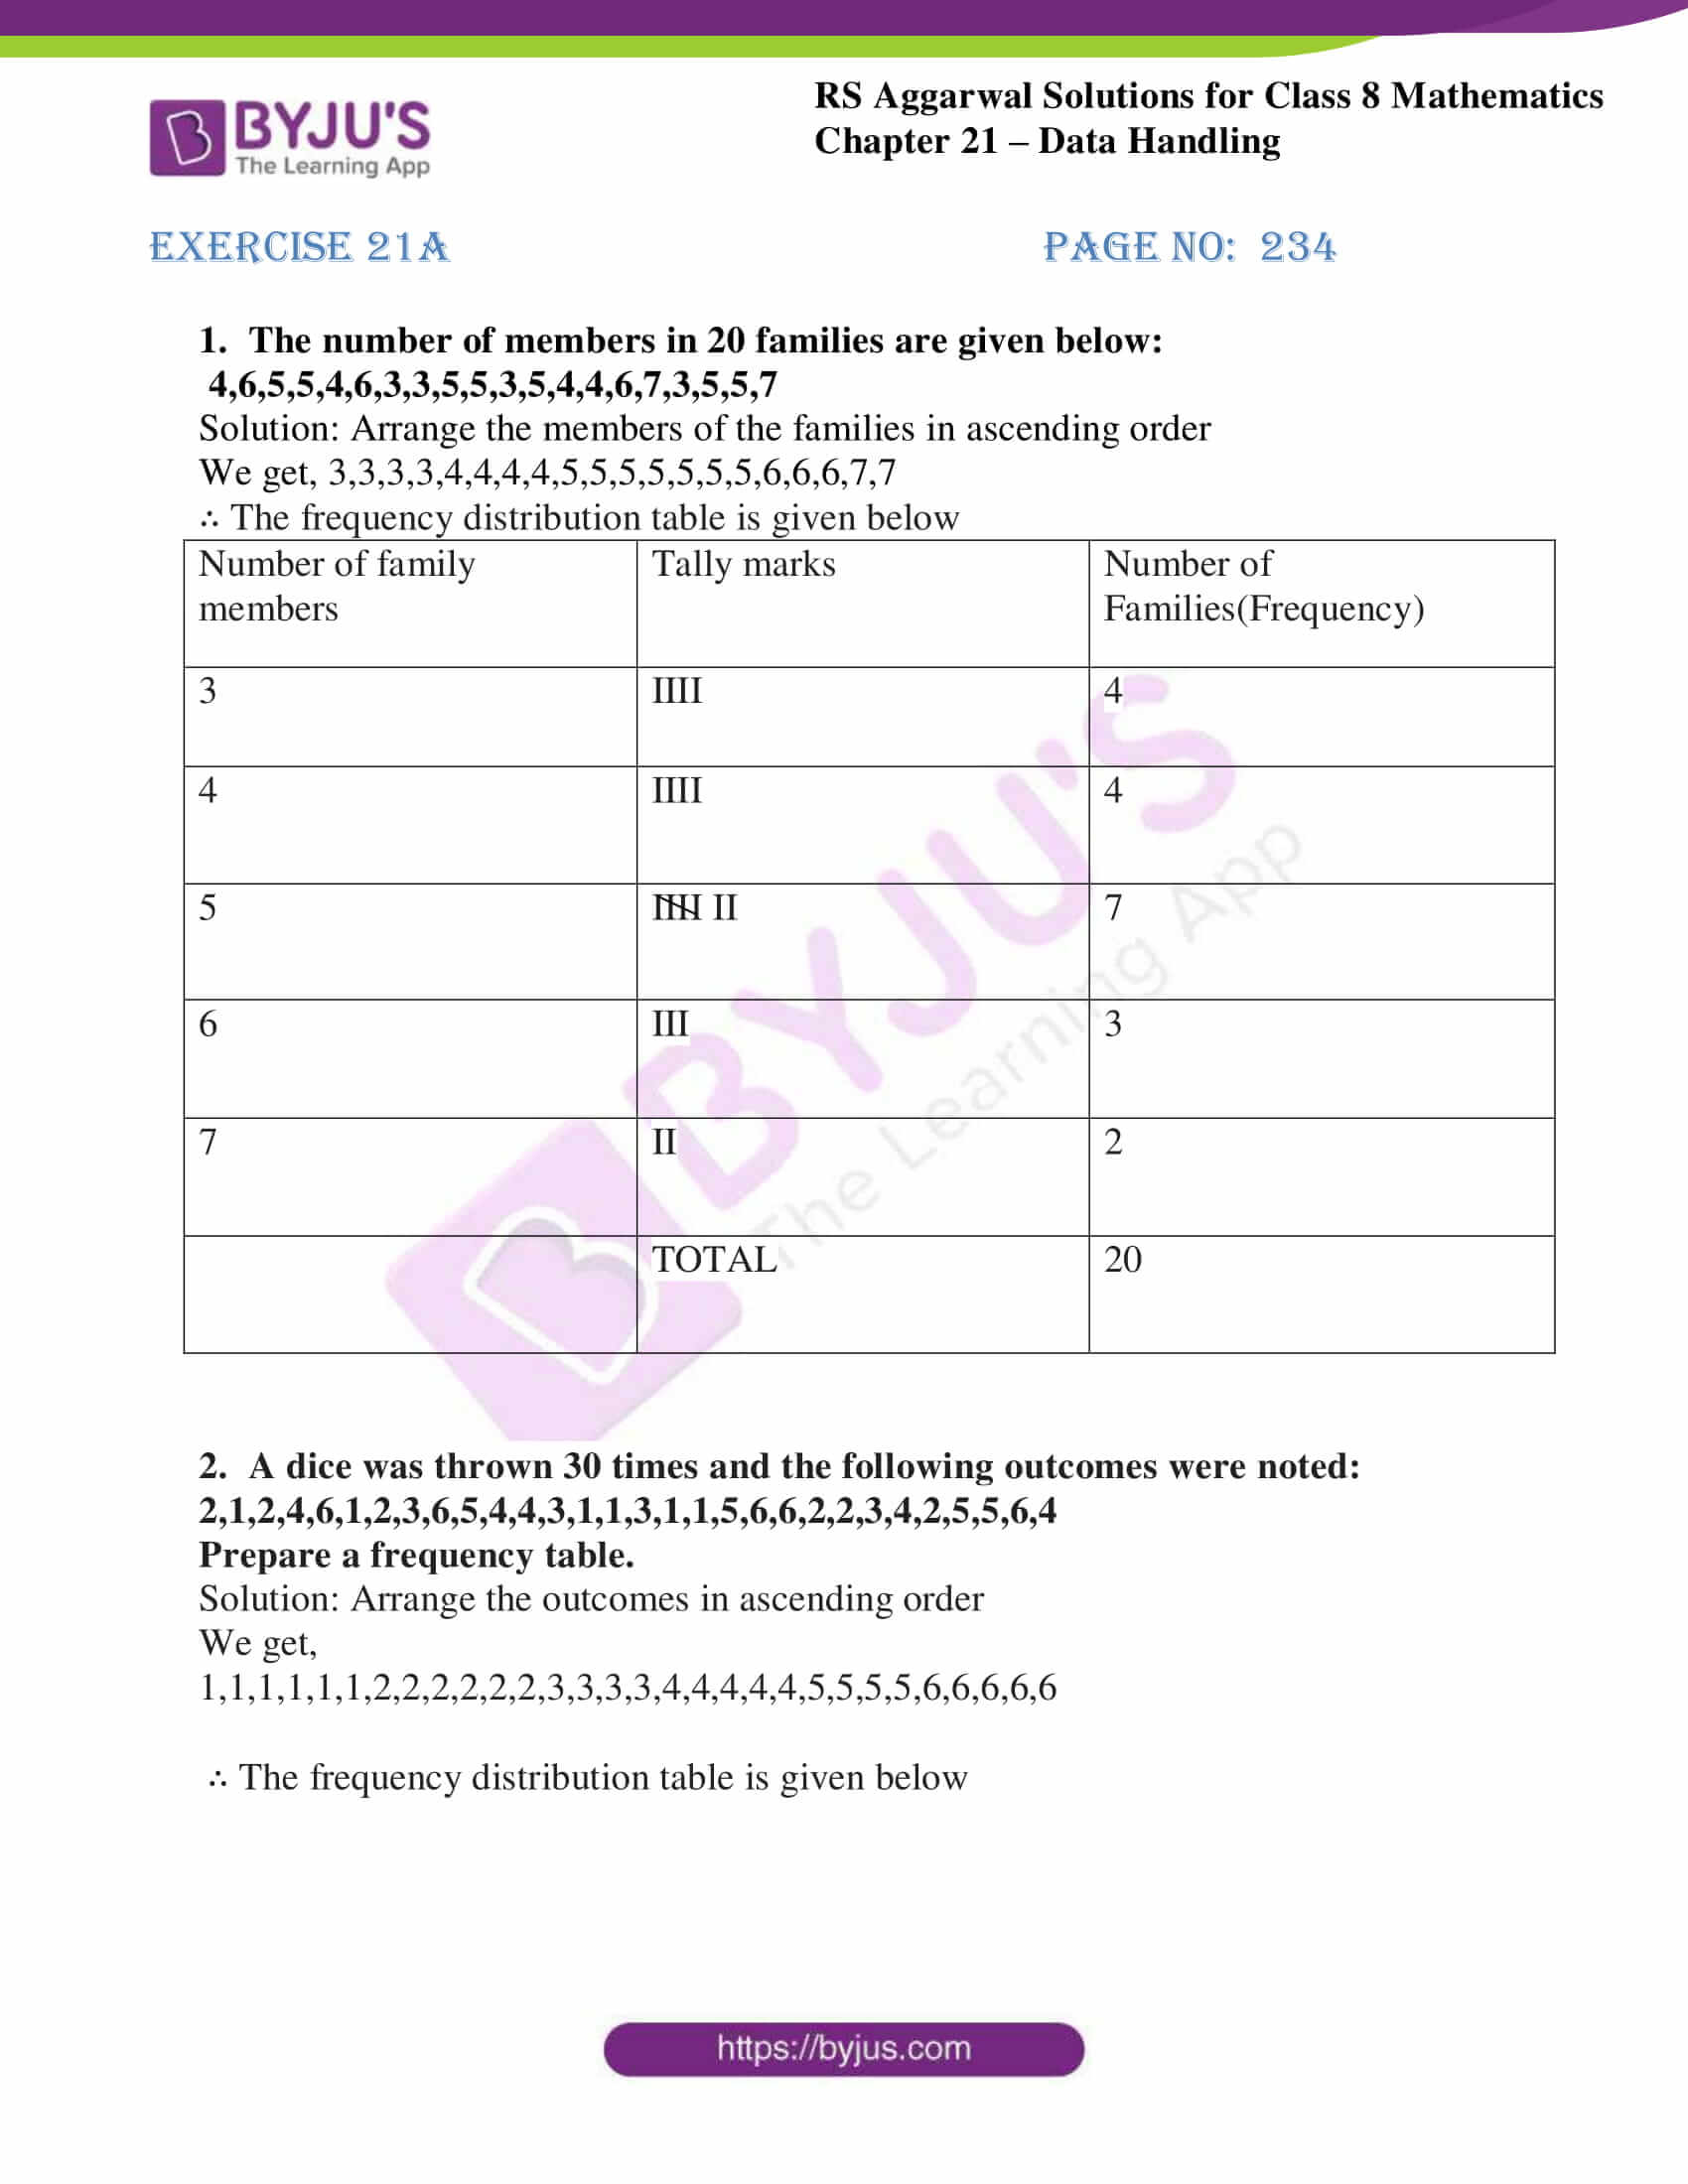 rs aggarwal solutions class 8 maths chapter 21a